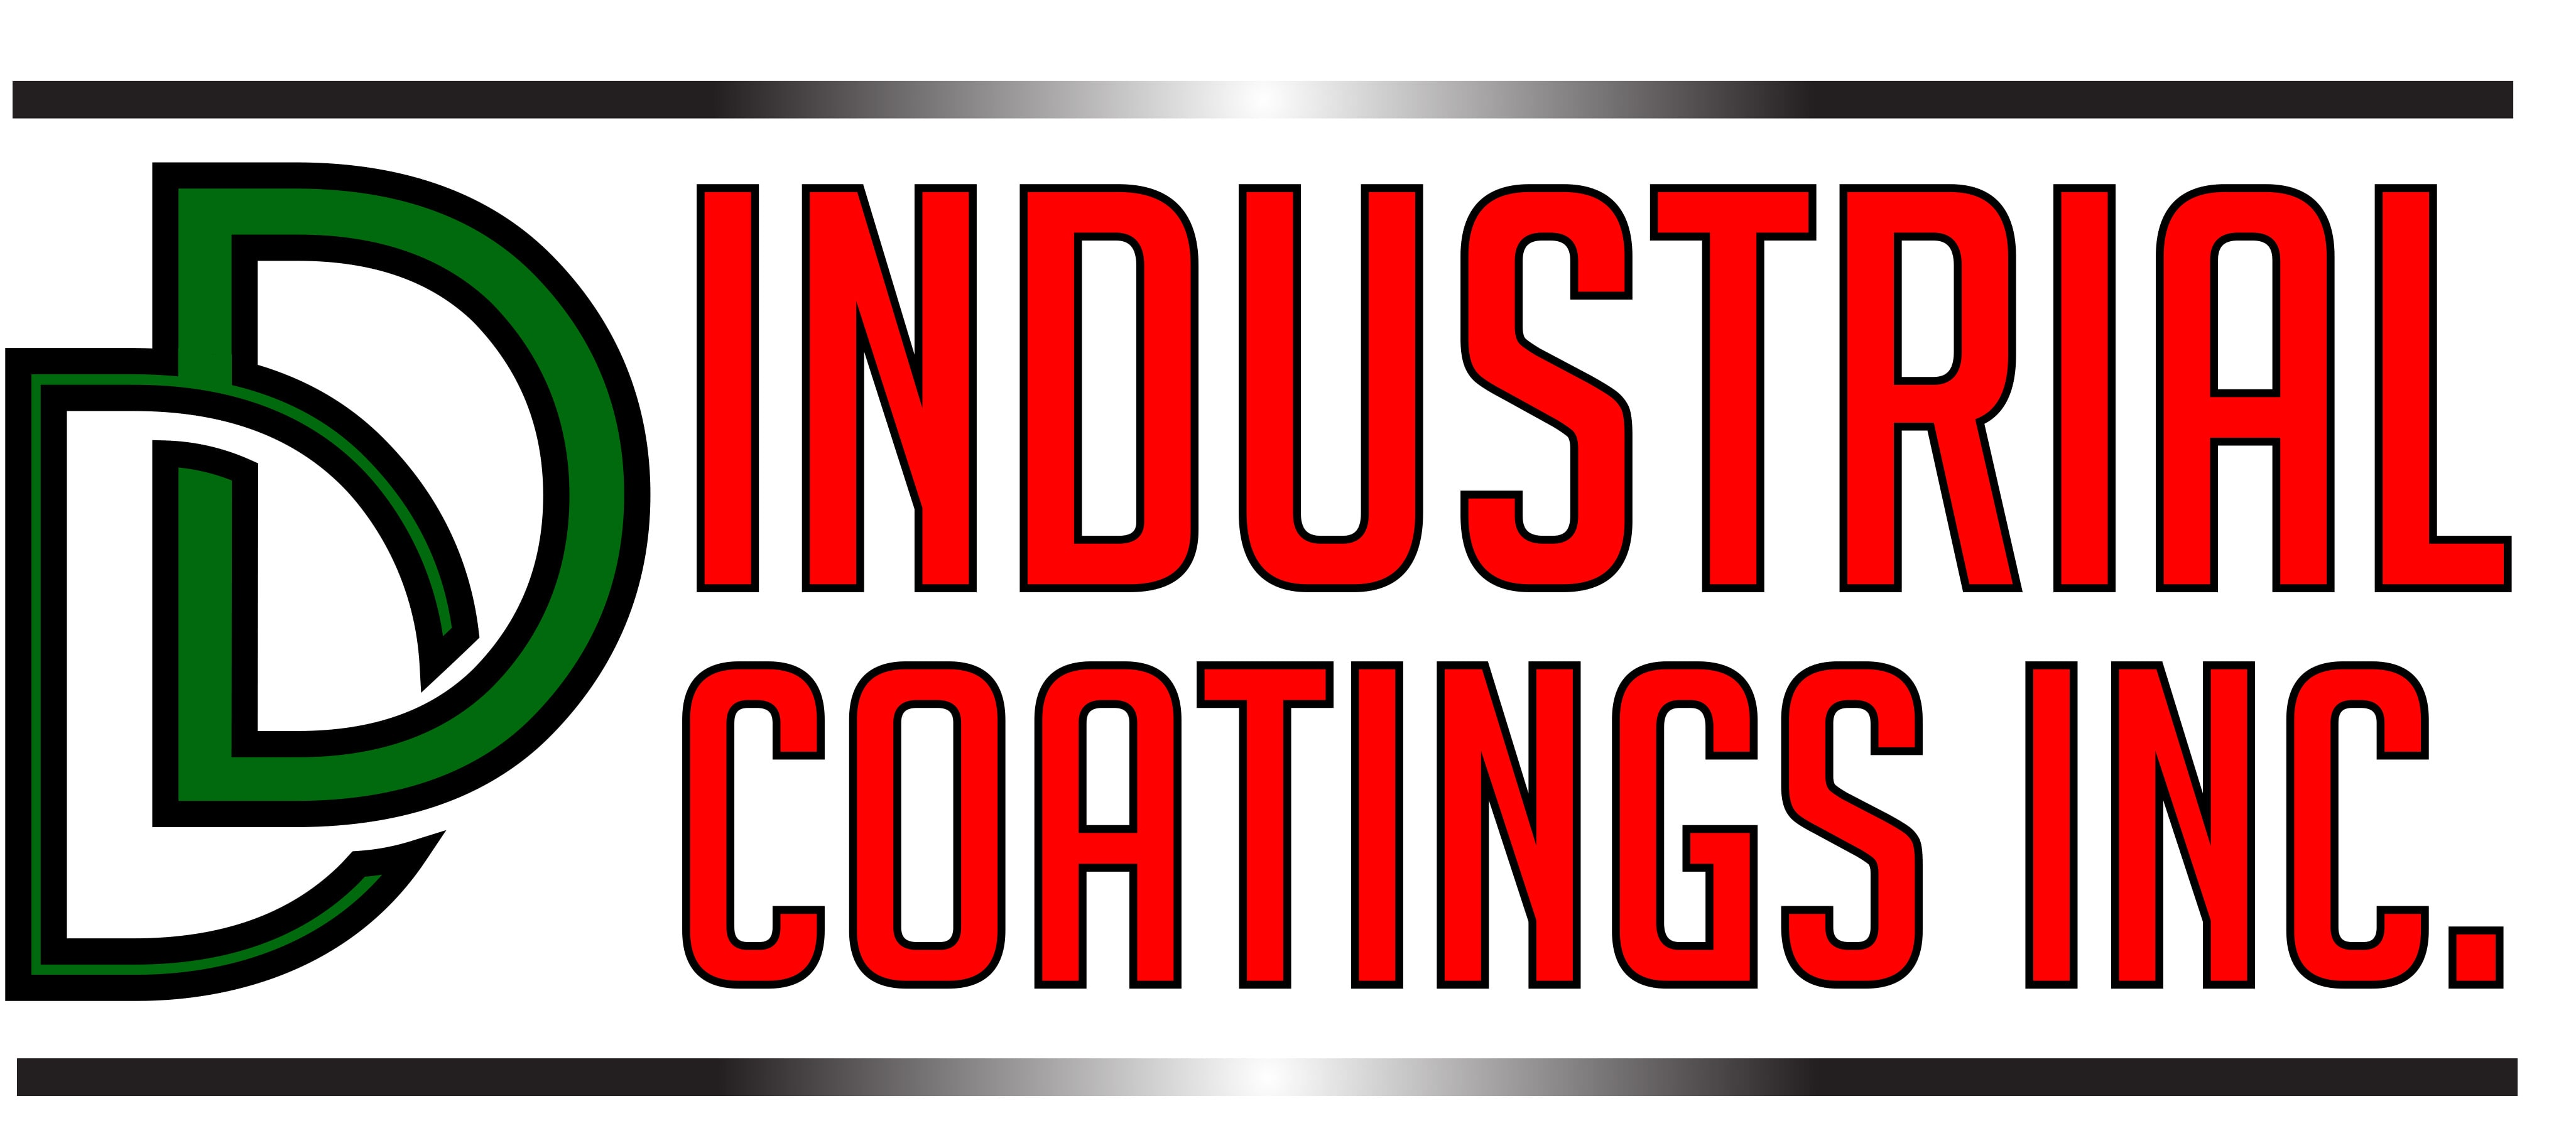 D & D Industrial Coatings